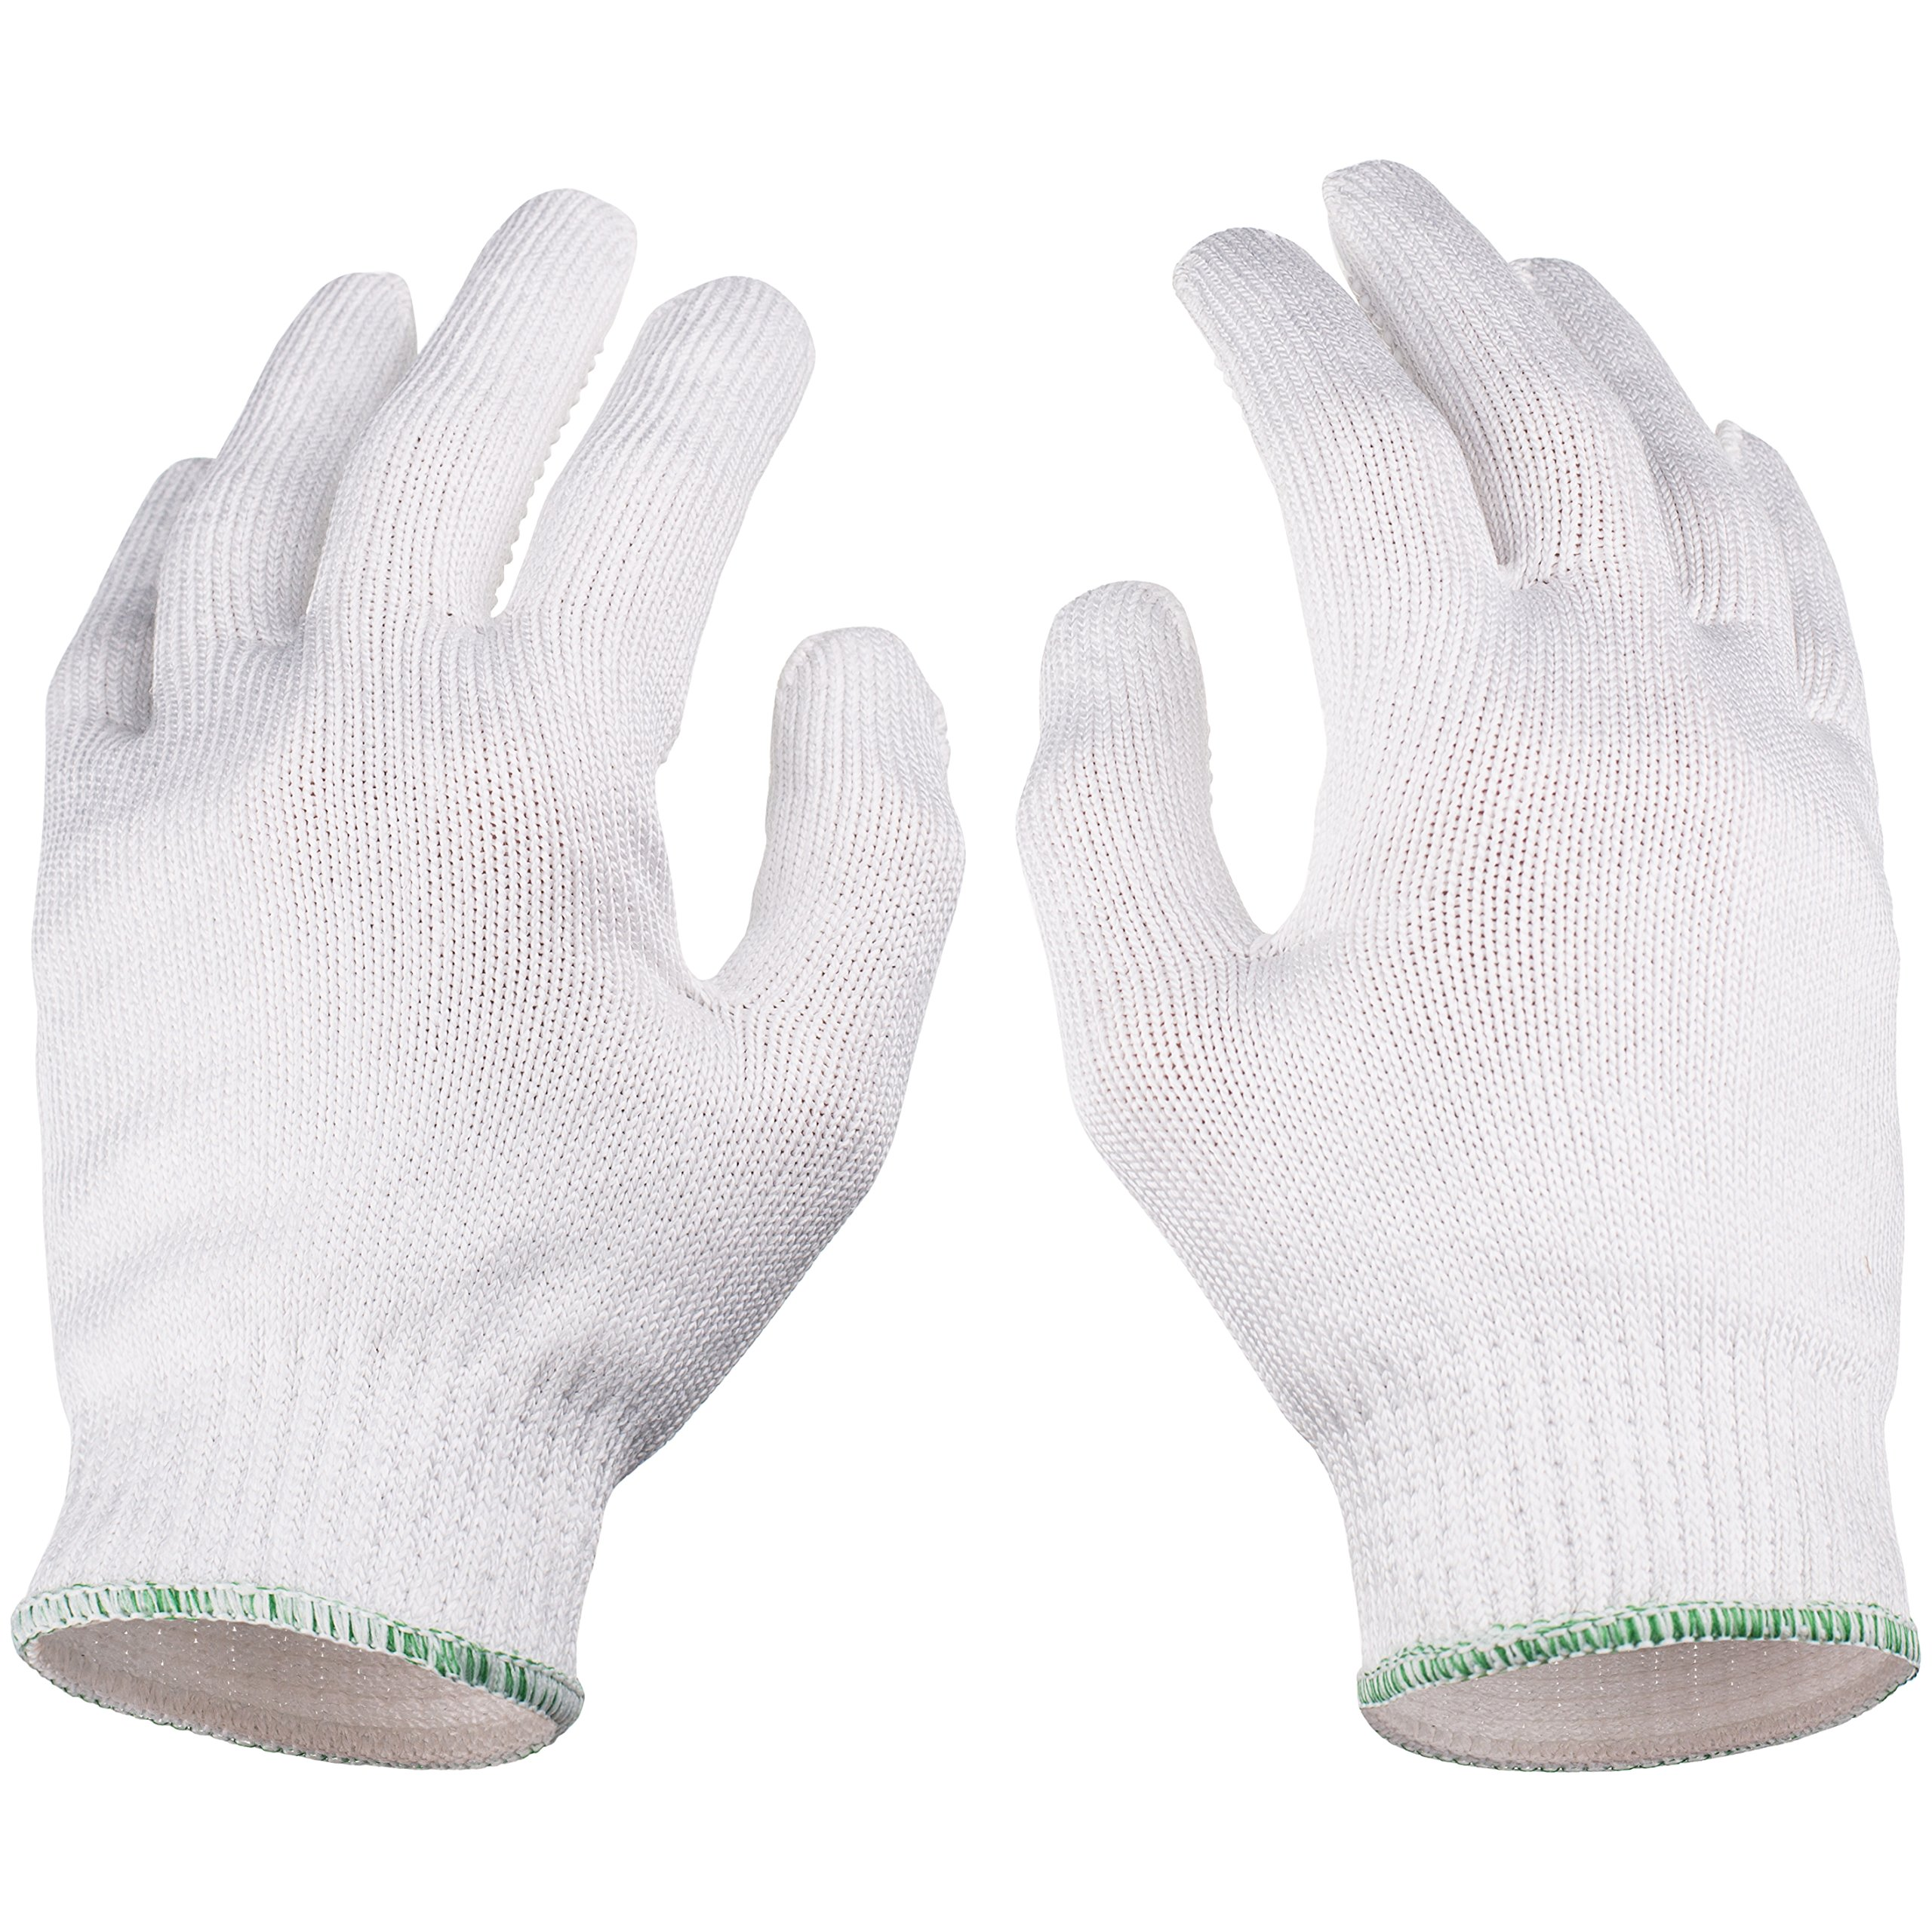 NoCry Cut Resistant Protective Work Gloves with Rubber Grip Dots. Tough and Durable Stainless Steel Material, EN388 Certified. 1 Pair. White, Size Large by NoCry (Image #9)